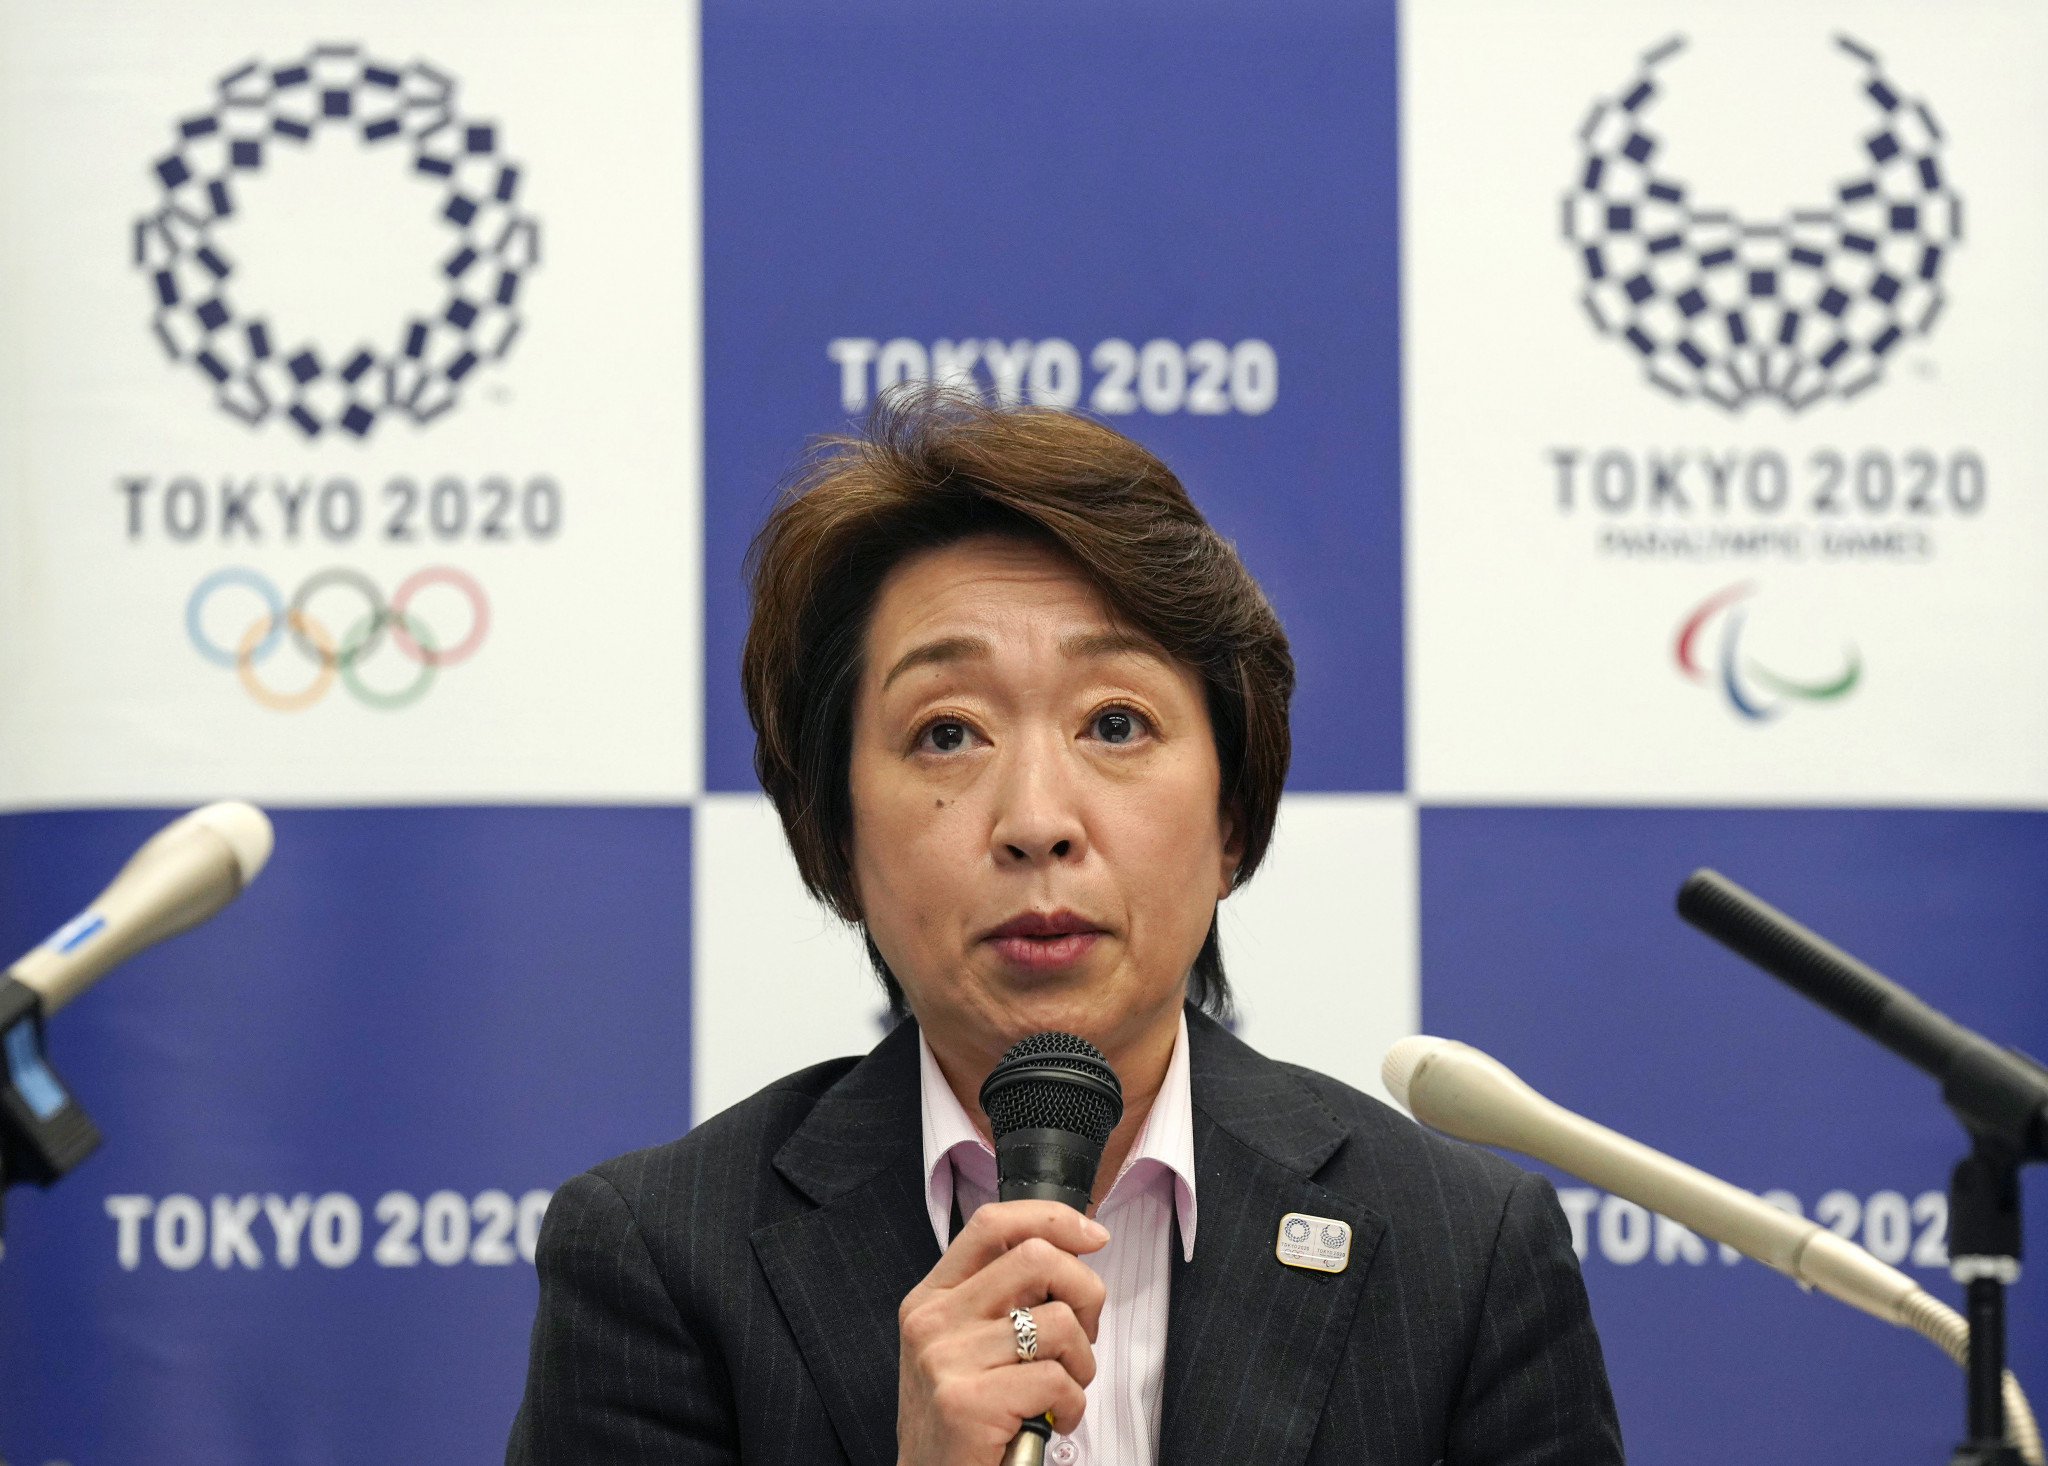 Hashimoto Seiko was appointed Tokyo 2020 President last month after a sexism row ©Getty Images